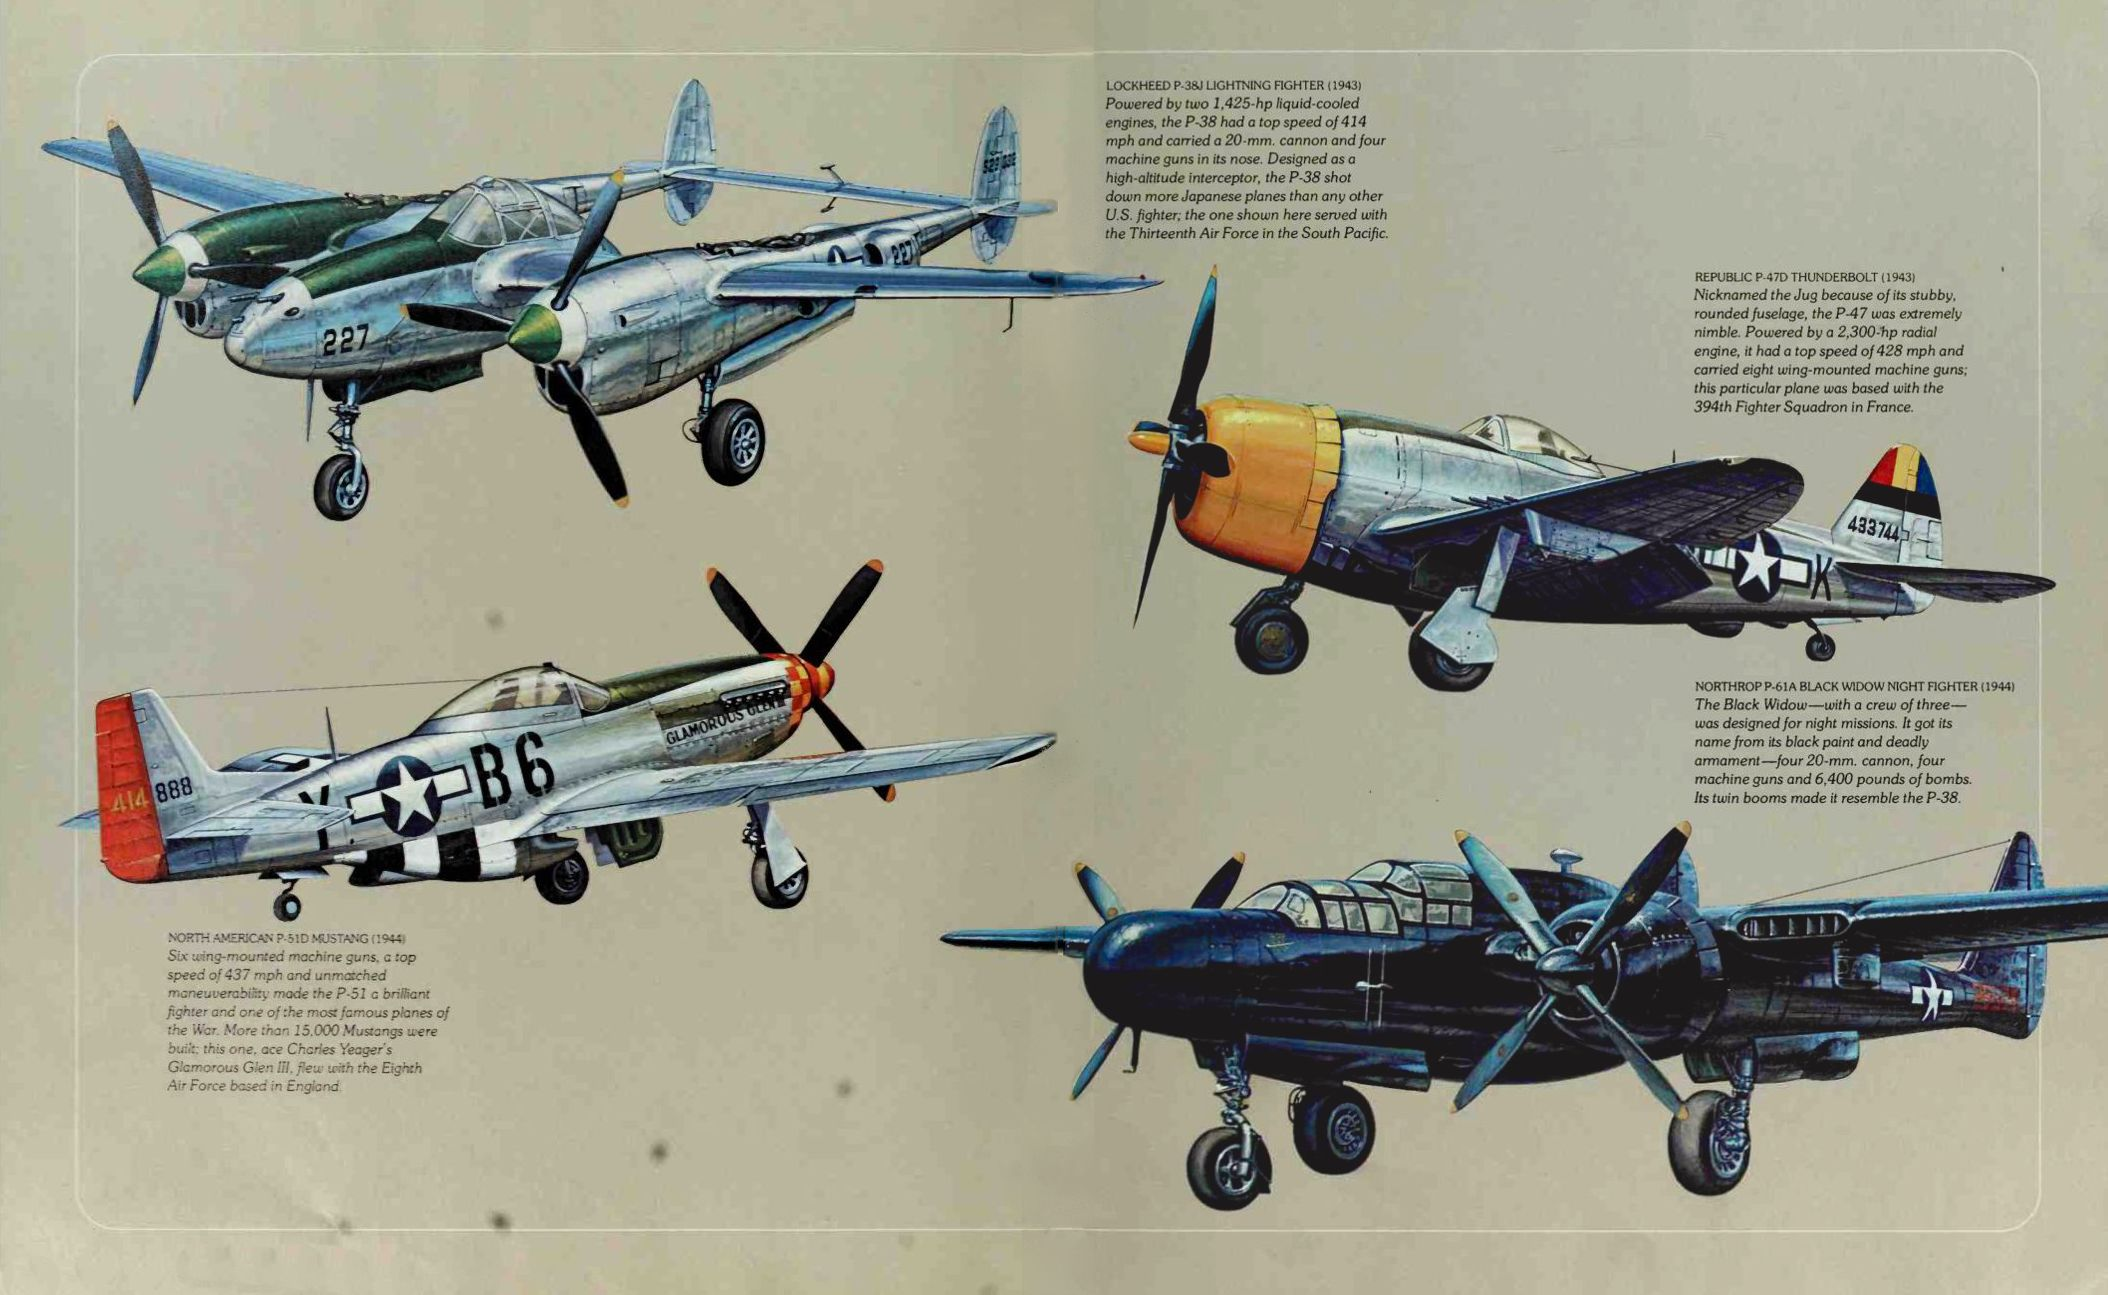 WORLD WAR II: AIRPOWER IN THE CONTEXT OF TOTAL WAR | Weapons